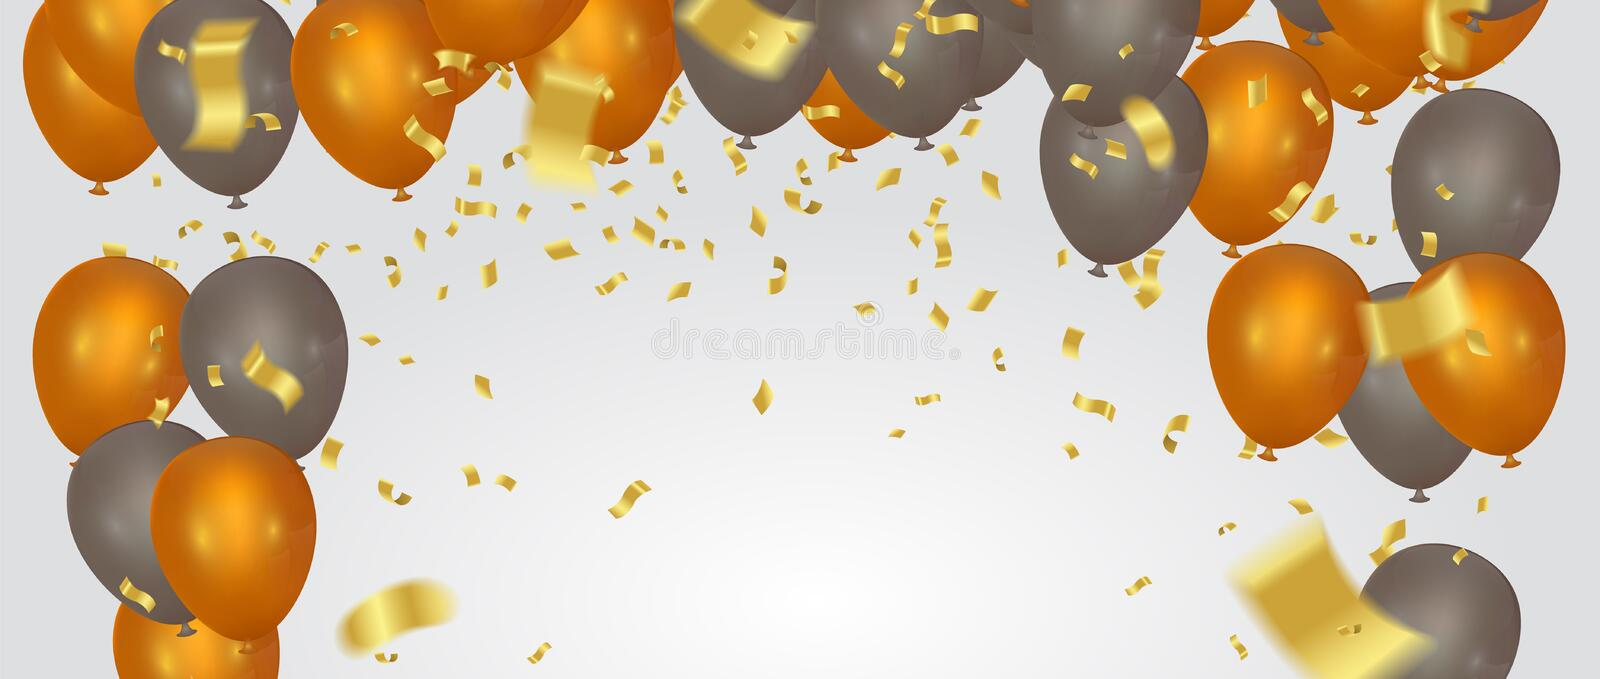 Happy Color background Happy Birthday! Holiday Banner with Colo. Rful Balloons. Win, Party & Sale Design. Vector illustration vector illustration